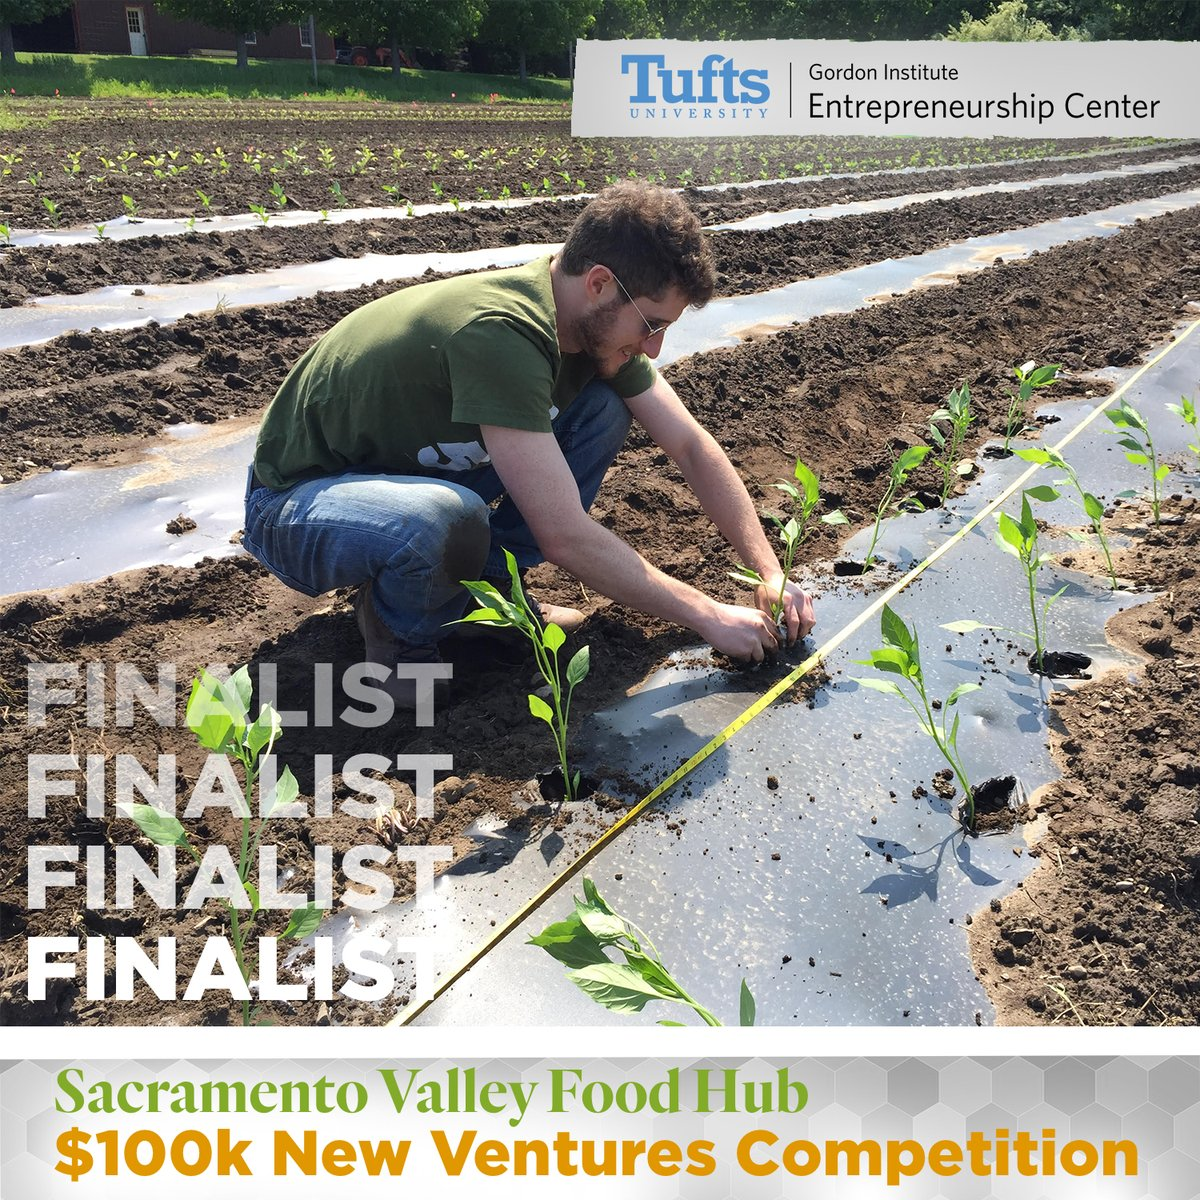 The Sacramento Valley Food Hub organizes and connects restaurants, food entrepreneurs and underserved communities with healthy, local produce from small and beginning sustainable farmers. Watch the team compete live at the $100k New Ventures Competition: https://bit.ly/2UaiAc9 pic.twitter.com/yxVoNYplcE